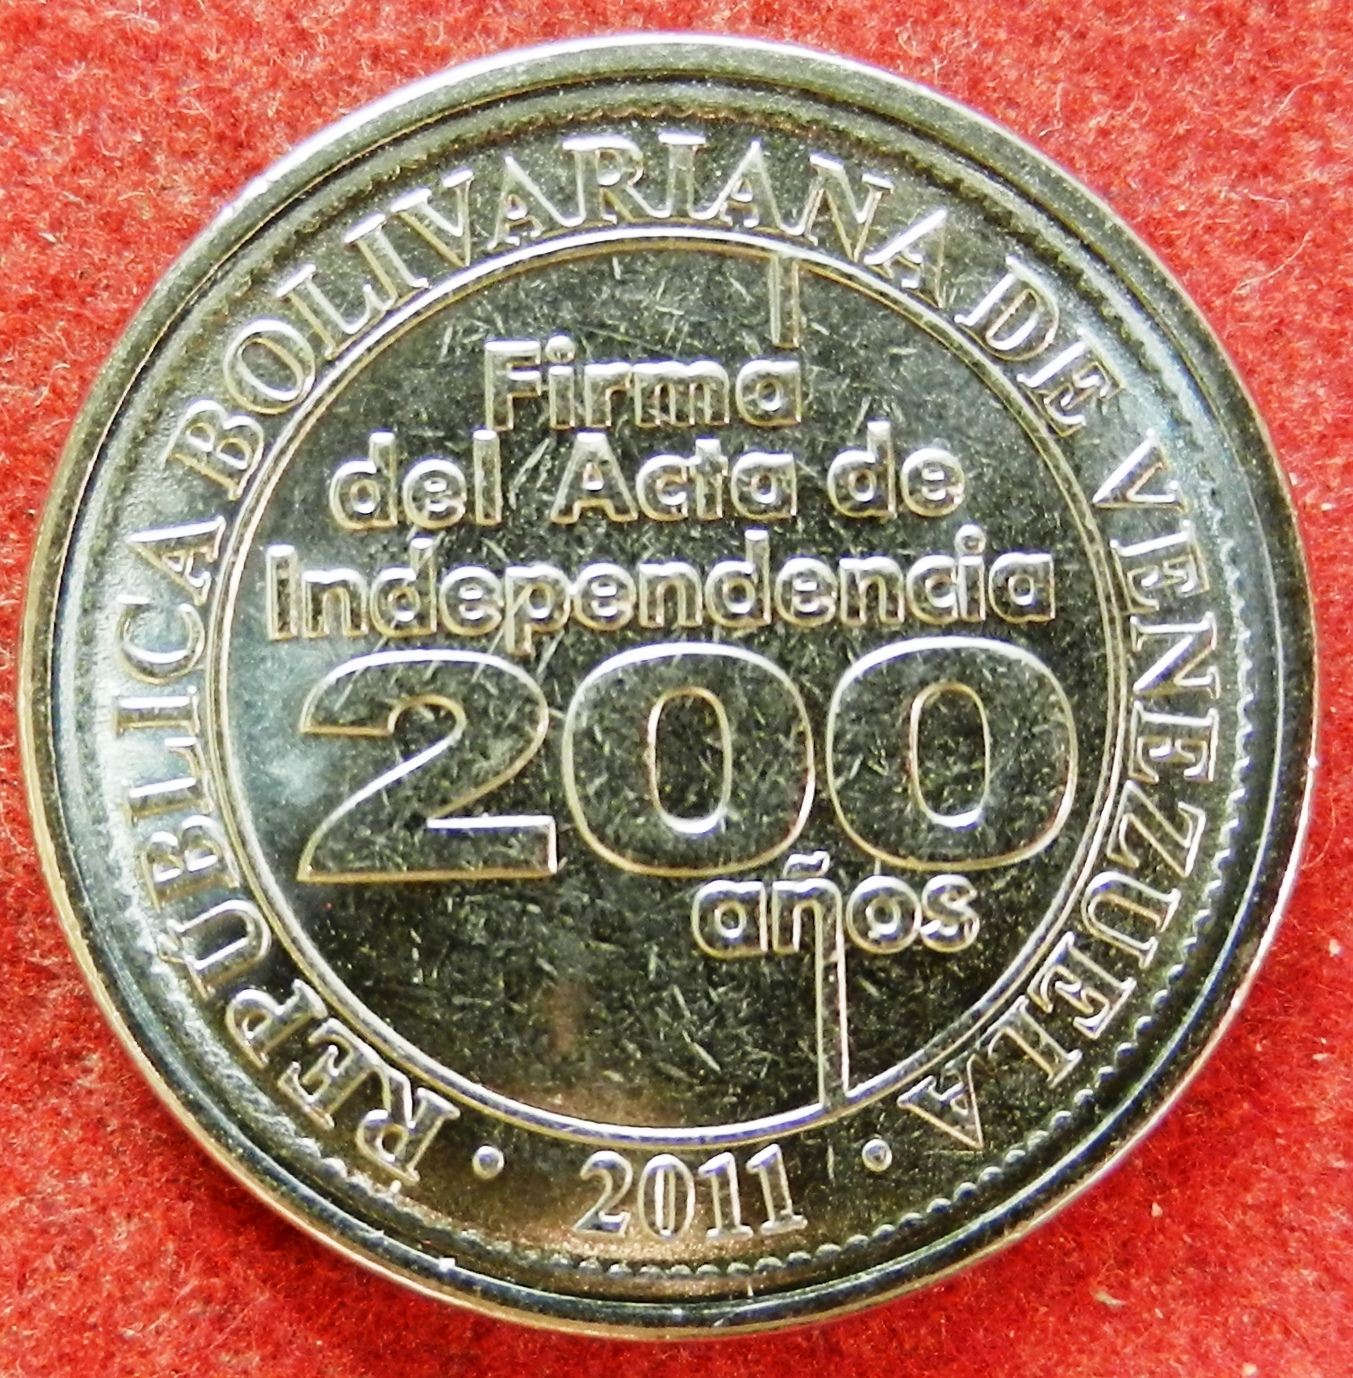 Venezuela 25 Centavos Y99 Not Only 2010 But 2011 As Well